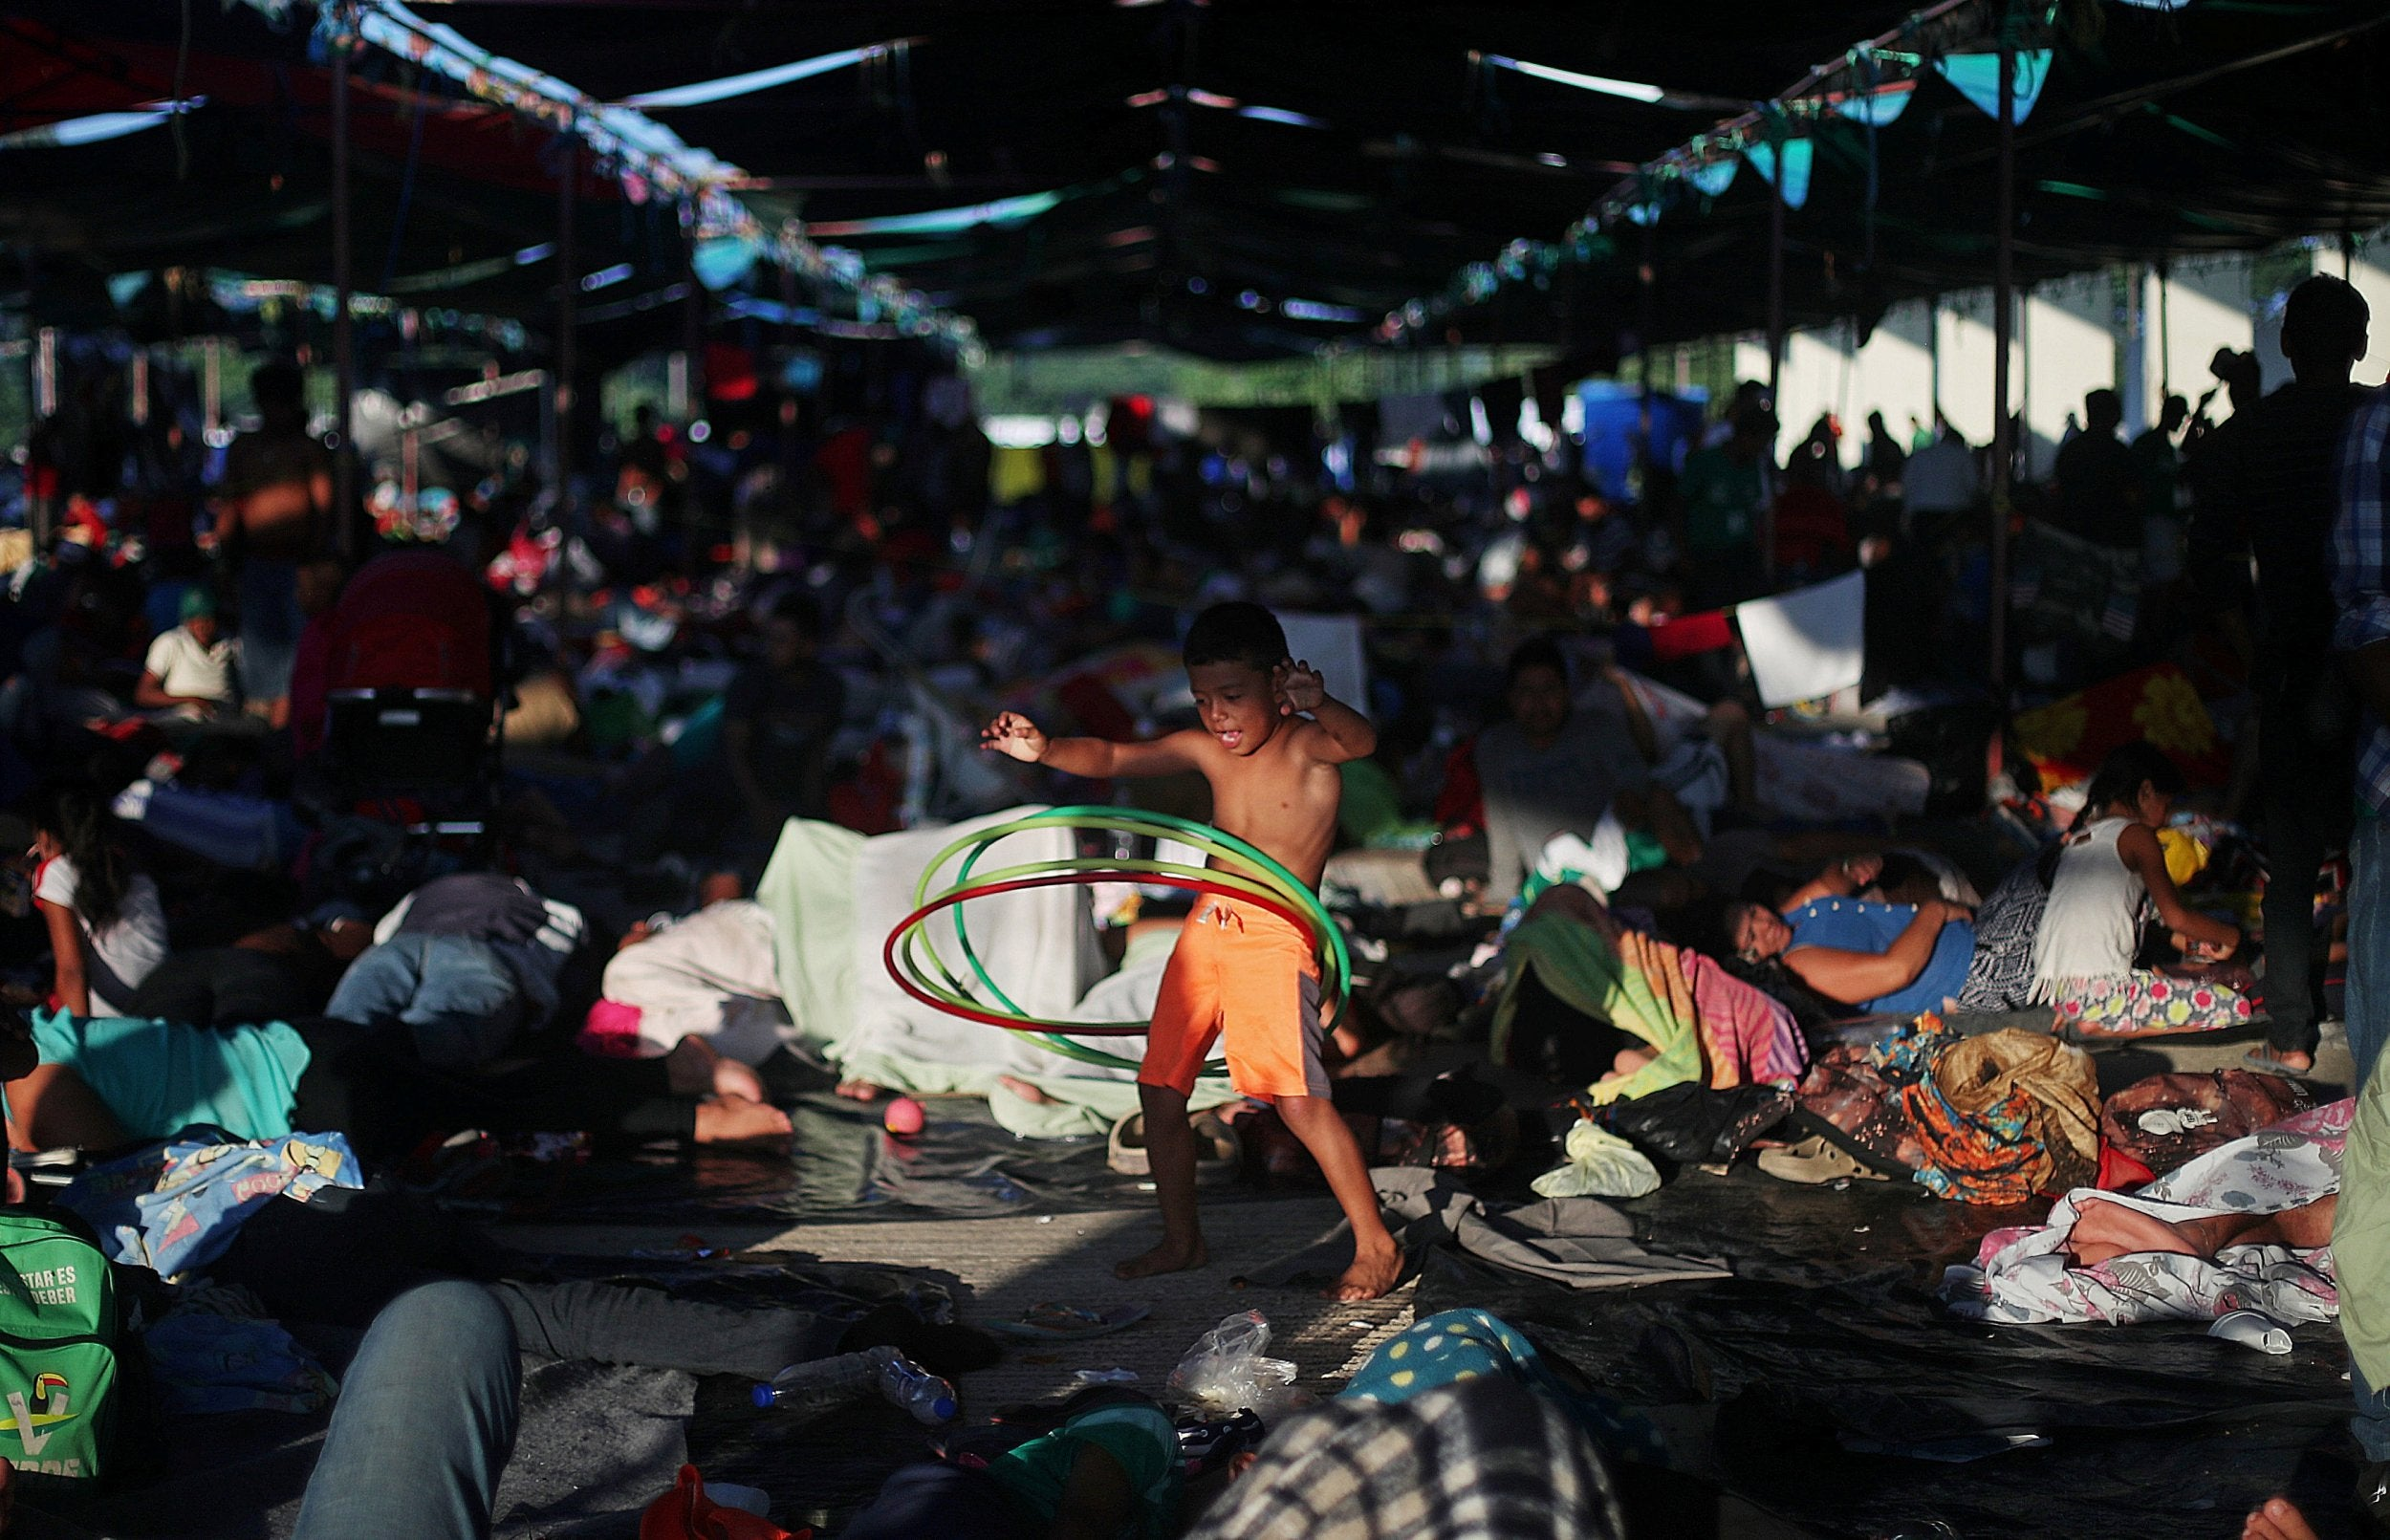 Hondurans In Migrant Caravan Sue Trump Administration Over Abuse Traditional Electrical Installation Guide Caravans Plus Of Power On Border Policies The Independent